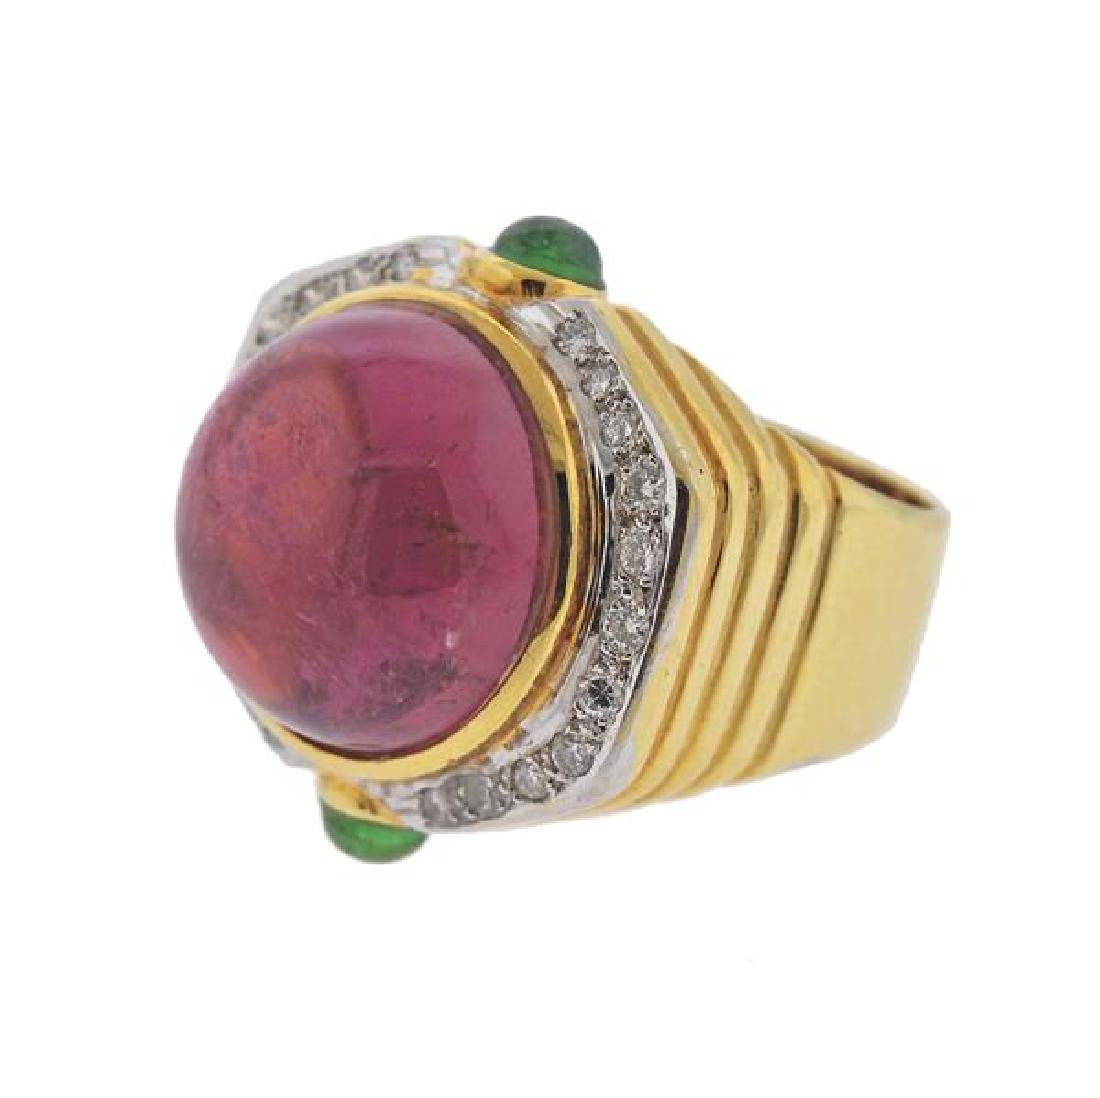 14K Gold Diamond Tourmaline Peridot Dome Ring - 2